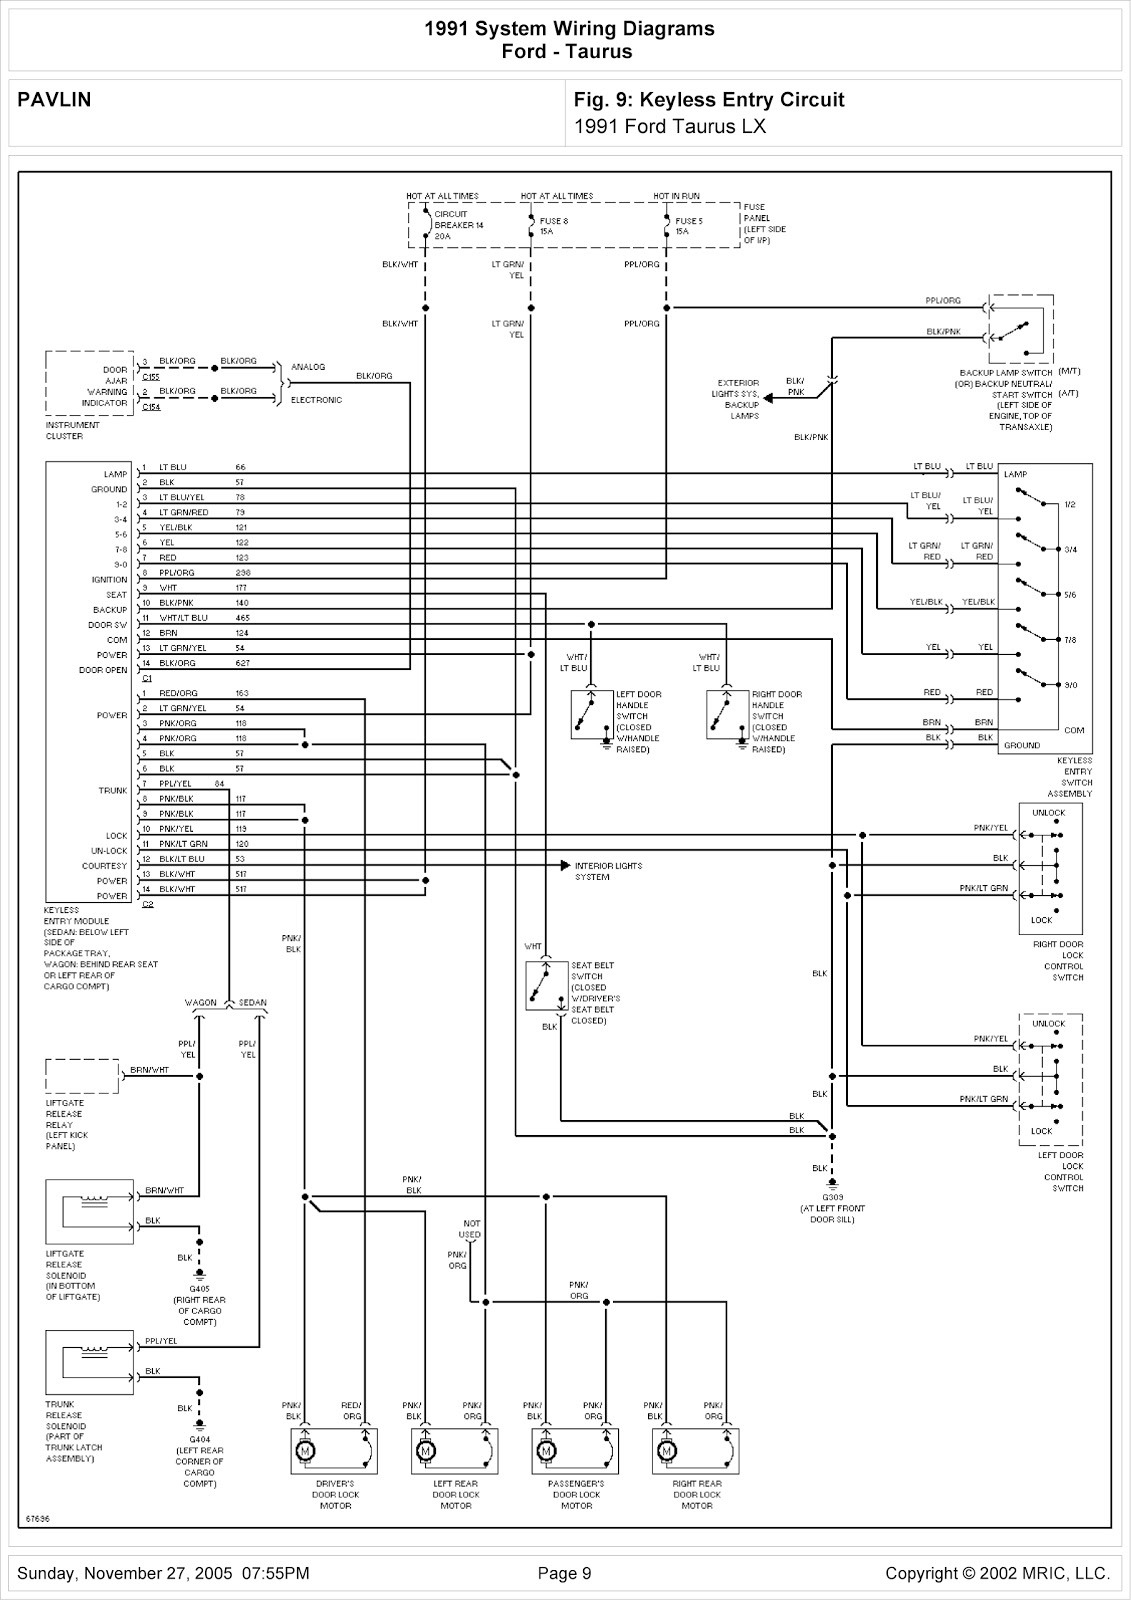 1991 ford taurus lx system wiring diagram for keyless entry 1991 ford taurus lx system wiring diagram for keyless entry circuit